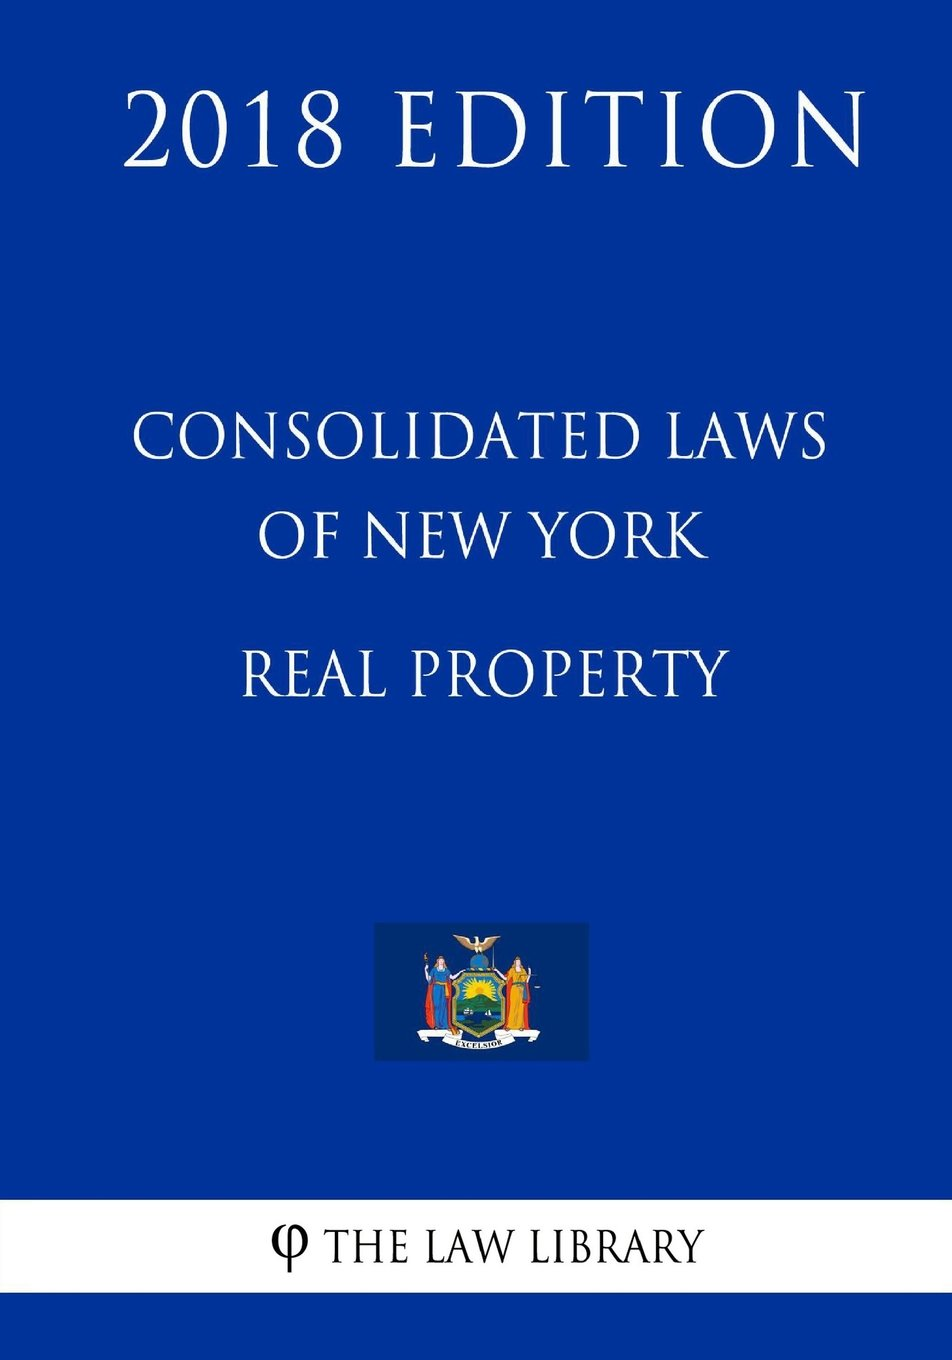 Download Consolidated Laws of New York - Real Property (2018 Edition) PDF